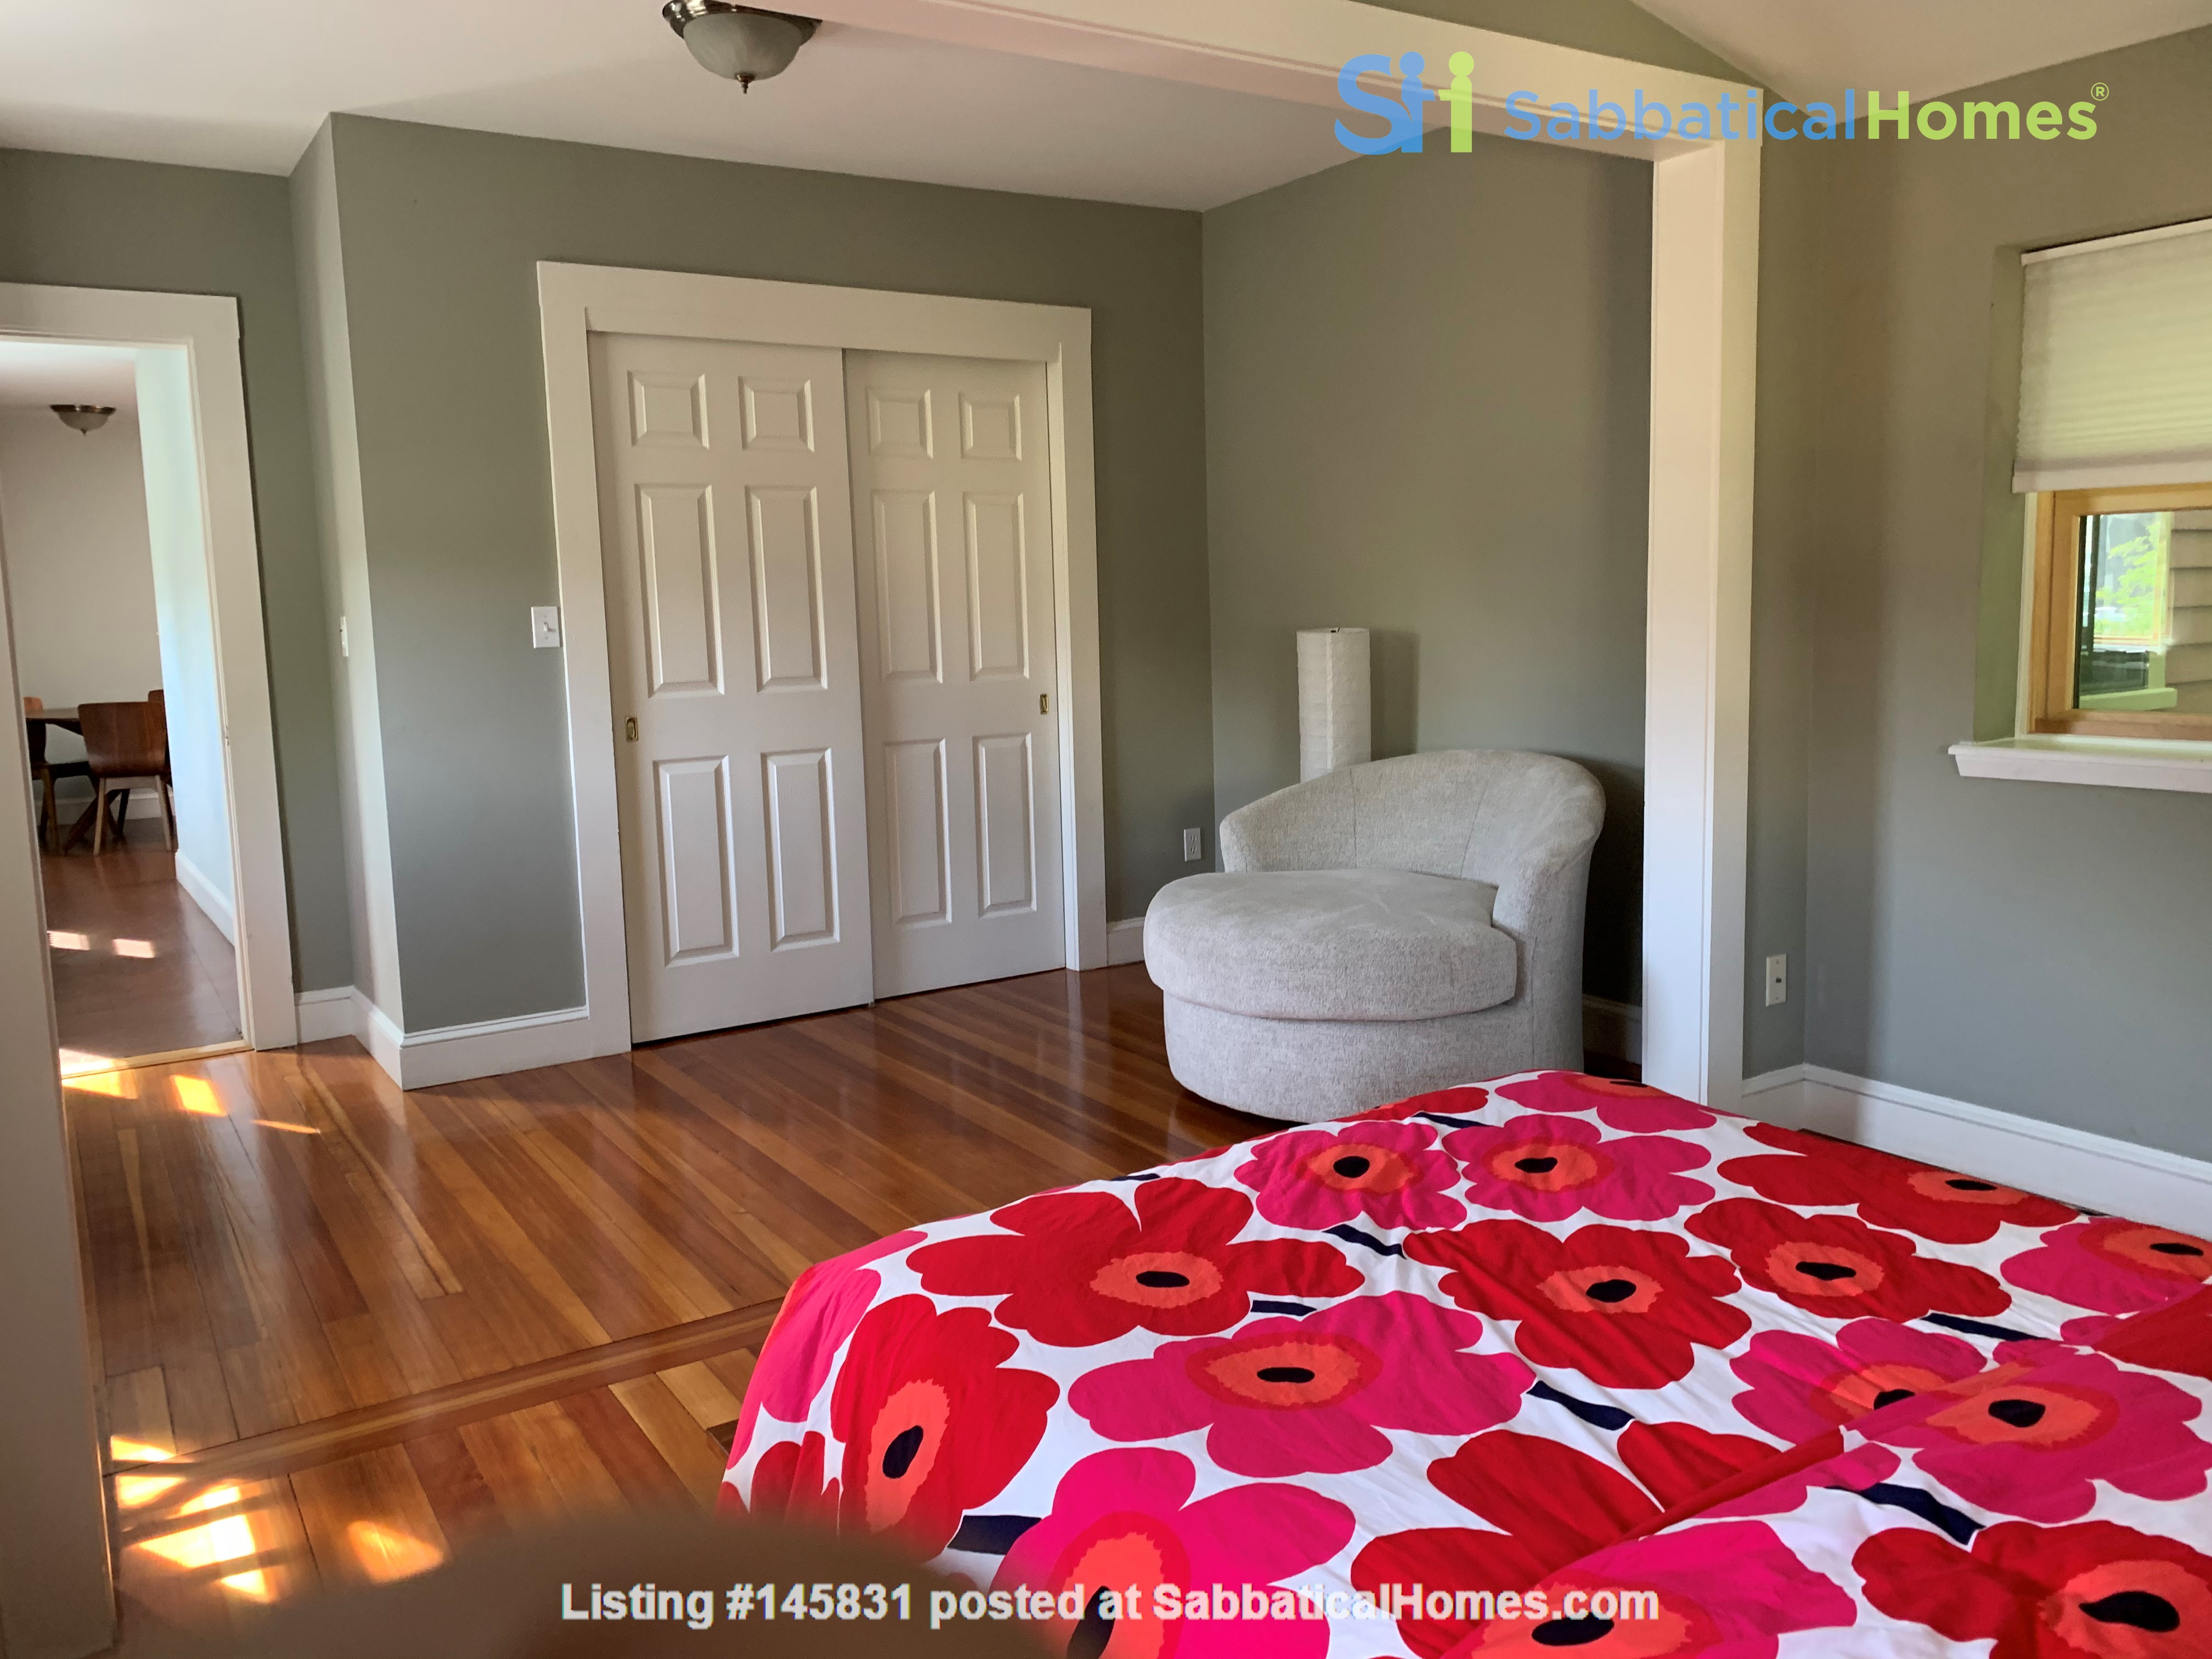 Harvard MIT HKS HBS! Fully furnished all utilities! Pets OK! No fee! Home Rental in Cambridge 0